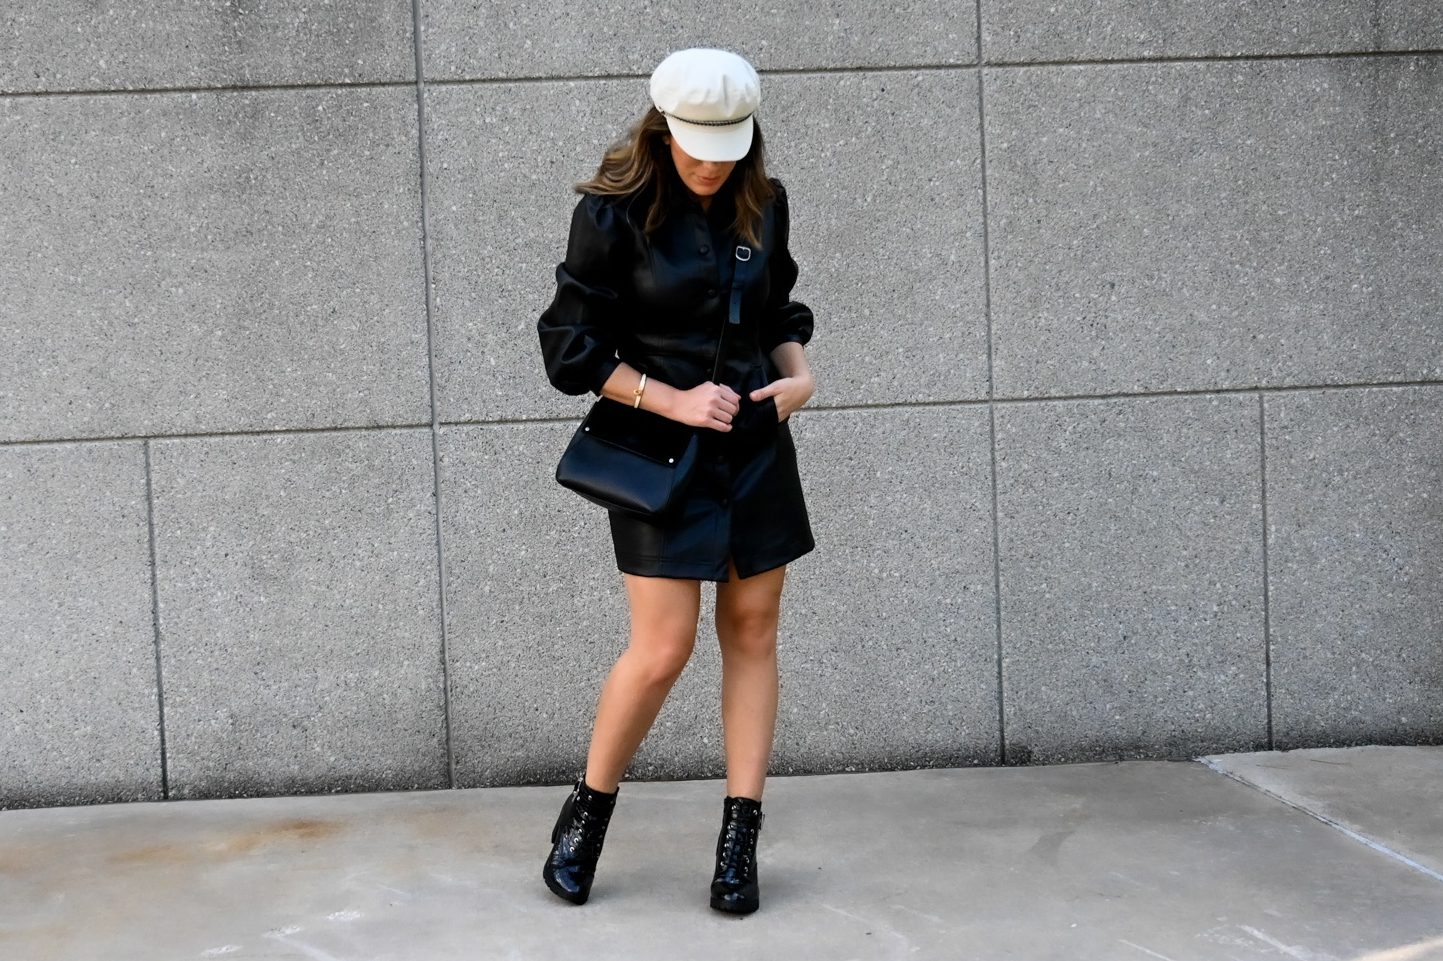 Top Houston fashion blogger Maria Munoz shares how to style a faux leather shirt dress from Topshop